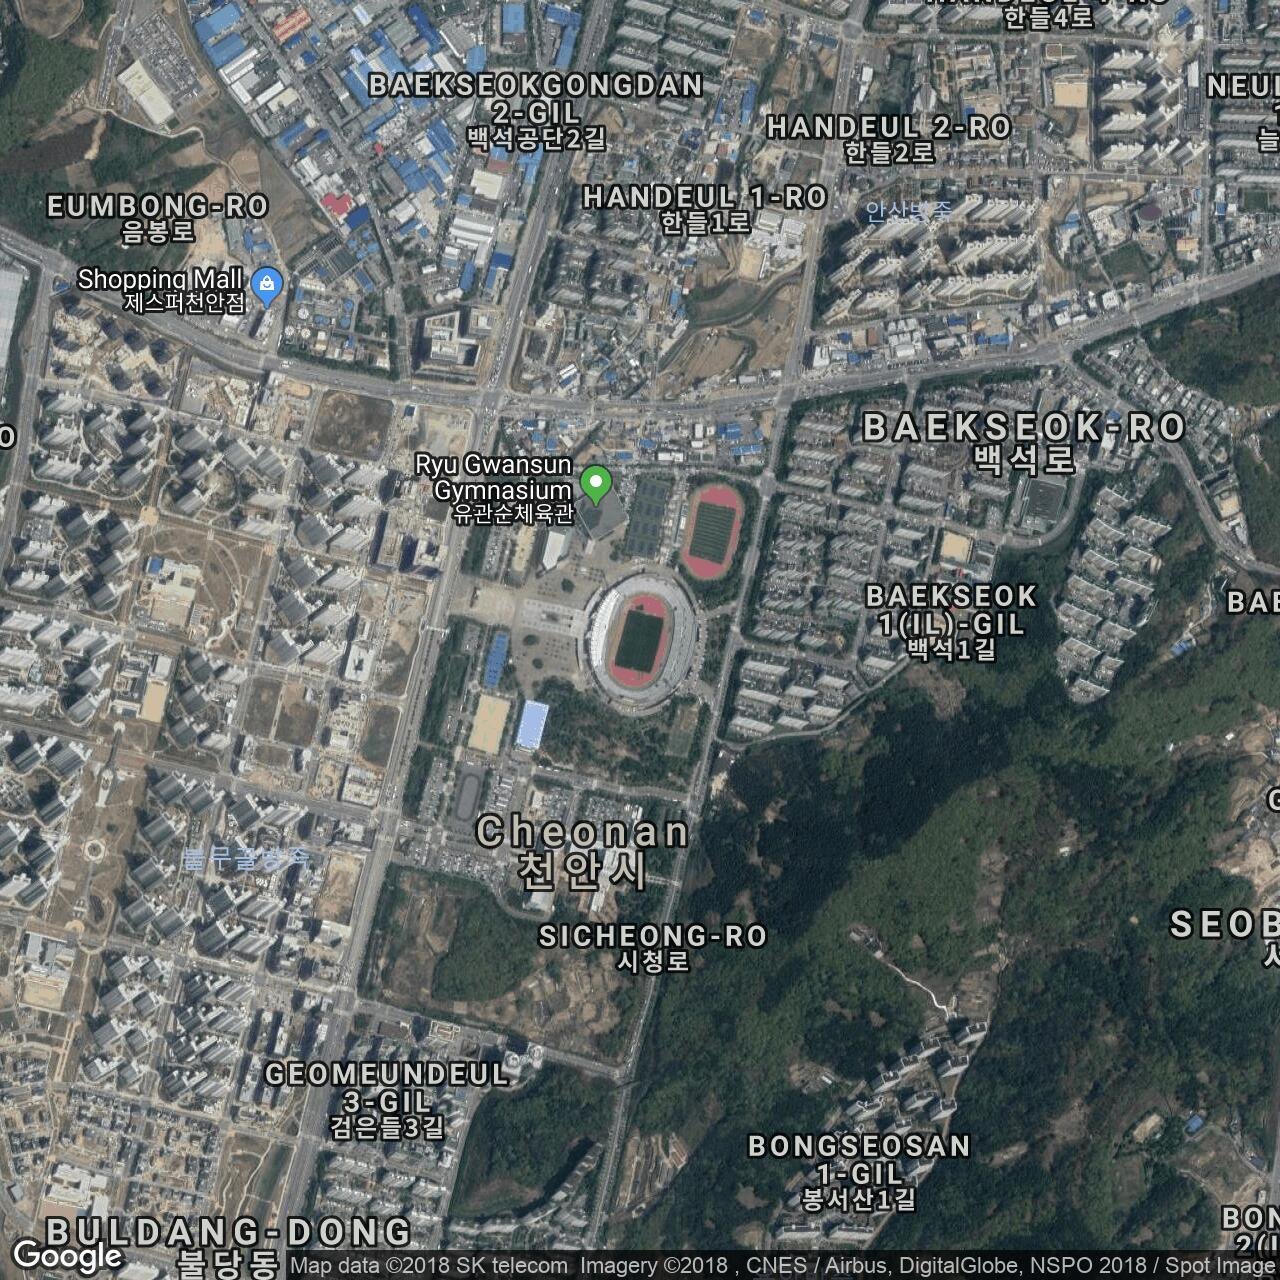 Cheonan Baeksok Stadium, home to Cheonan City FC - Football Ground Map